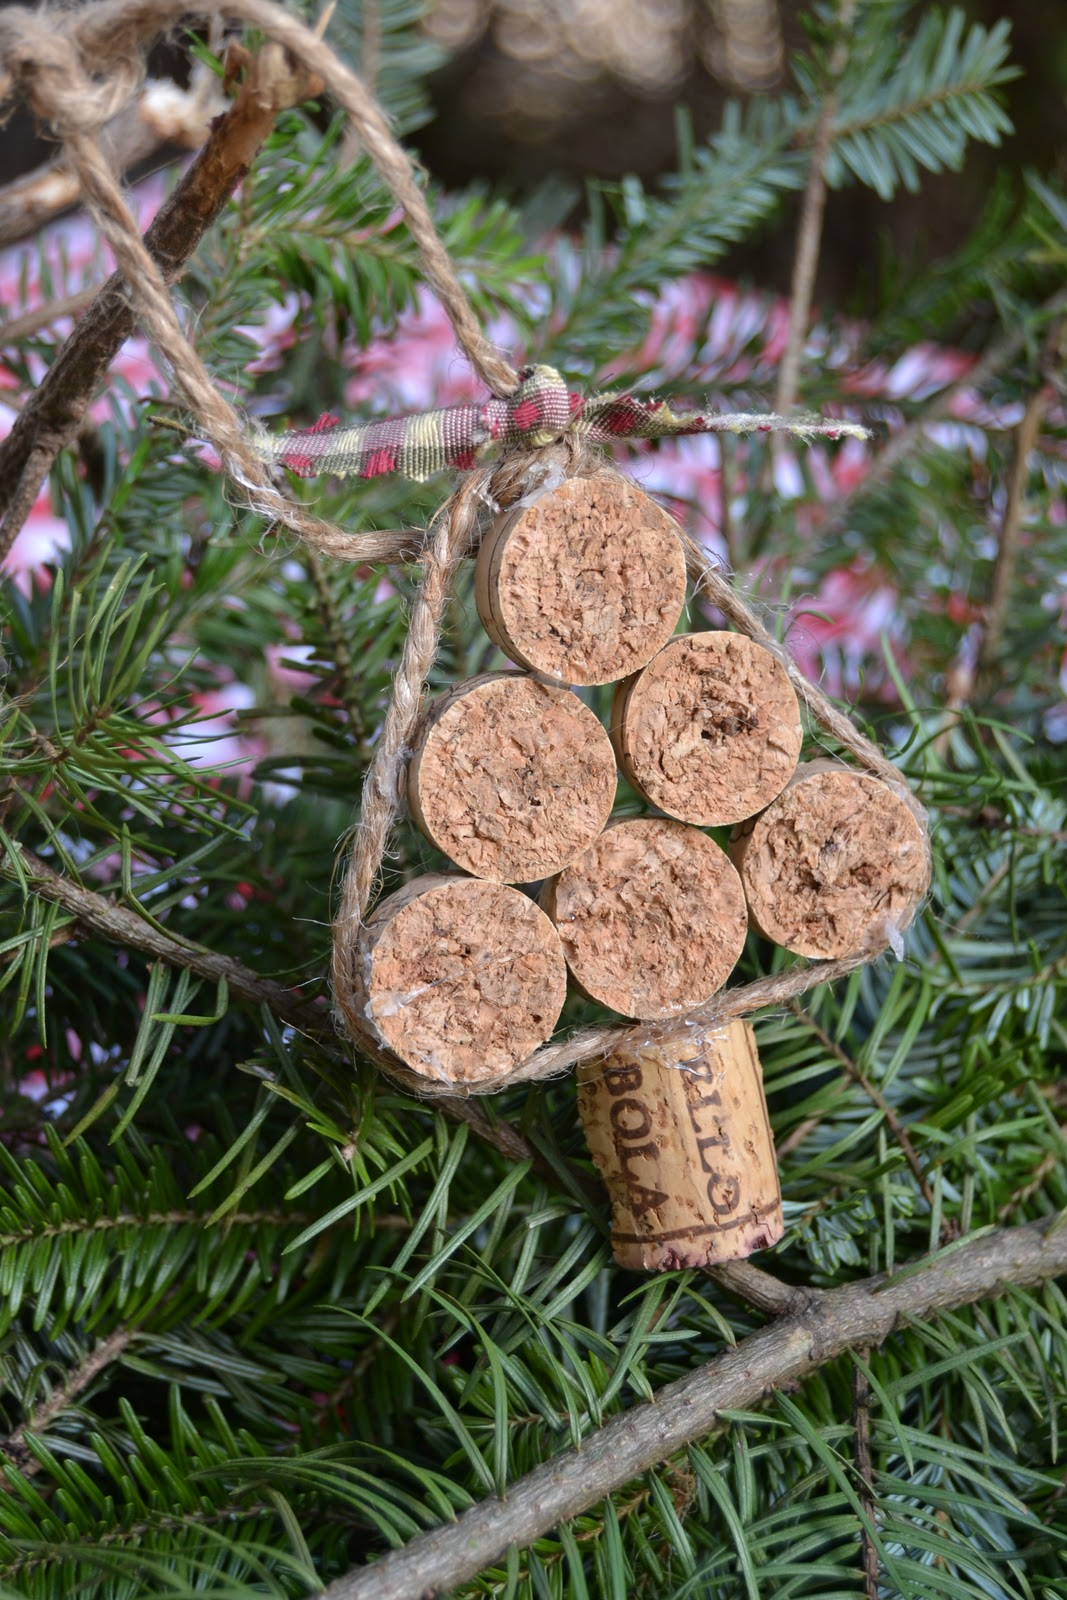 Ornaments made from wine corks - This Is Done With One Cork Cut In 6 Pieces And Another Cork Cut In Half Lengthwise And Then In Half Again For The Truck I Used About 16 Inches Of Jute